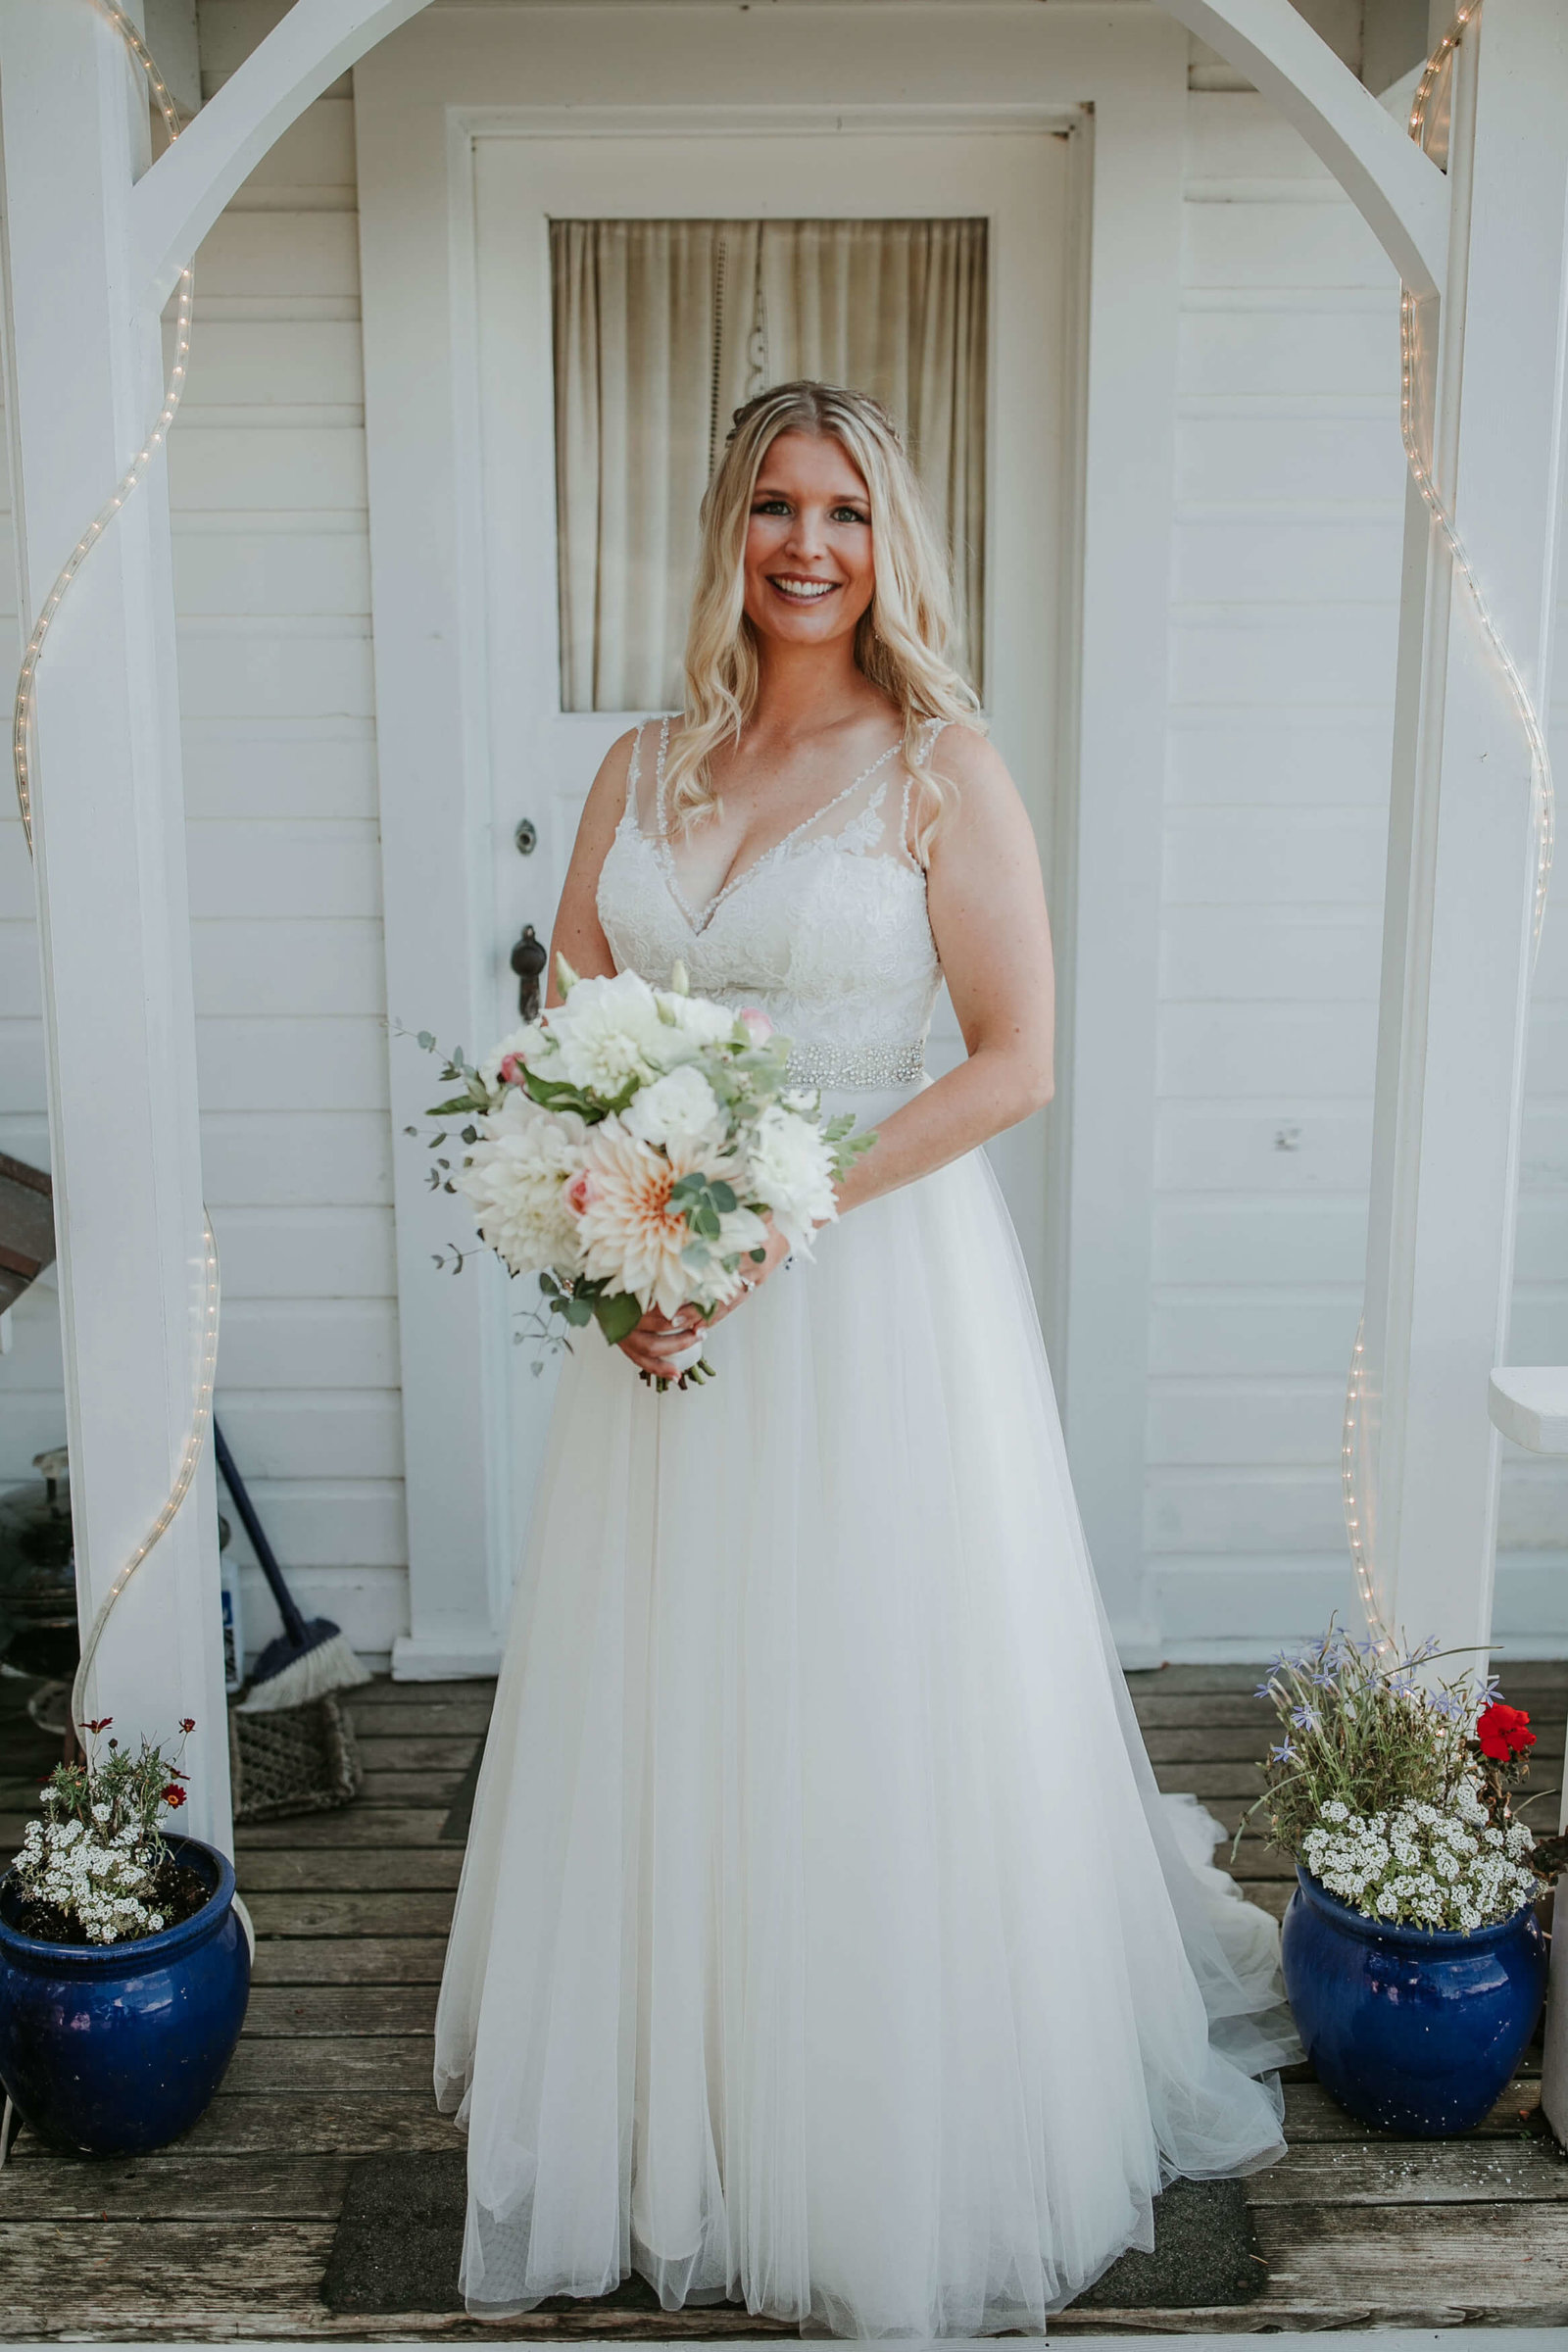 Orcas-island-wedding-katherine&robin-adina-preston-weddings-9-22-2018-APW-H834